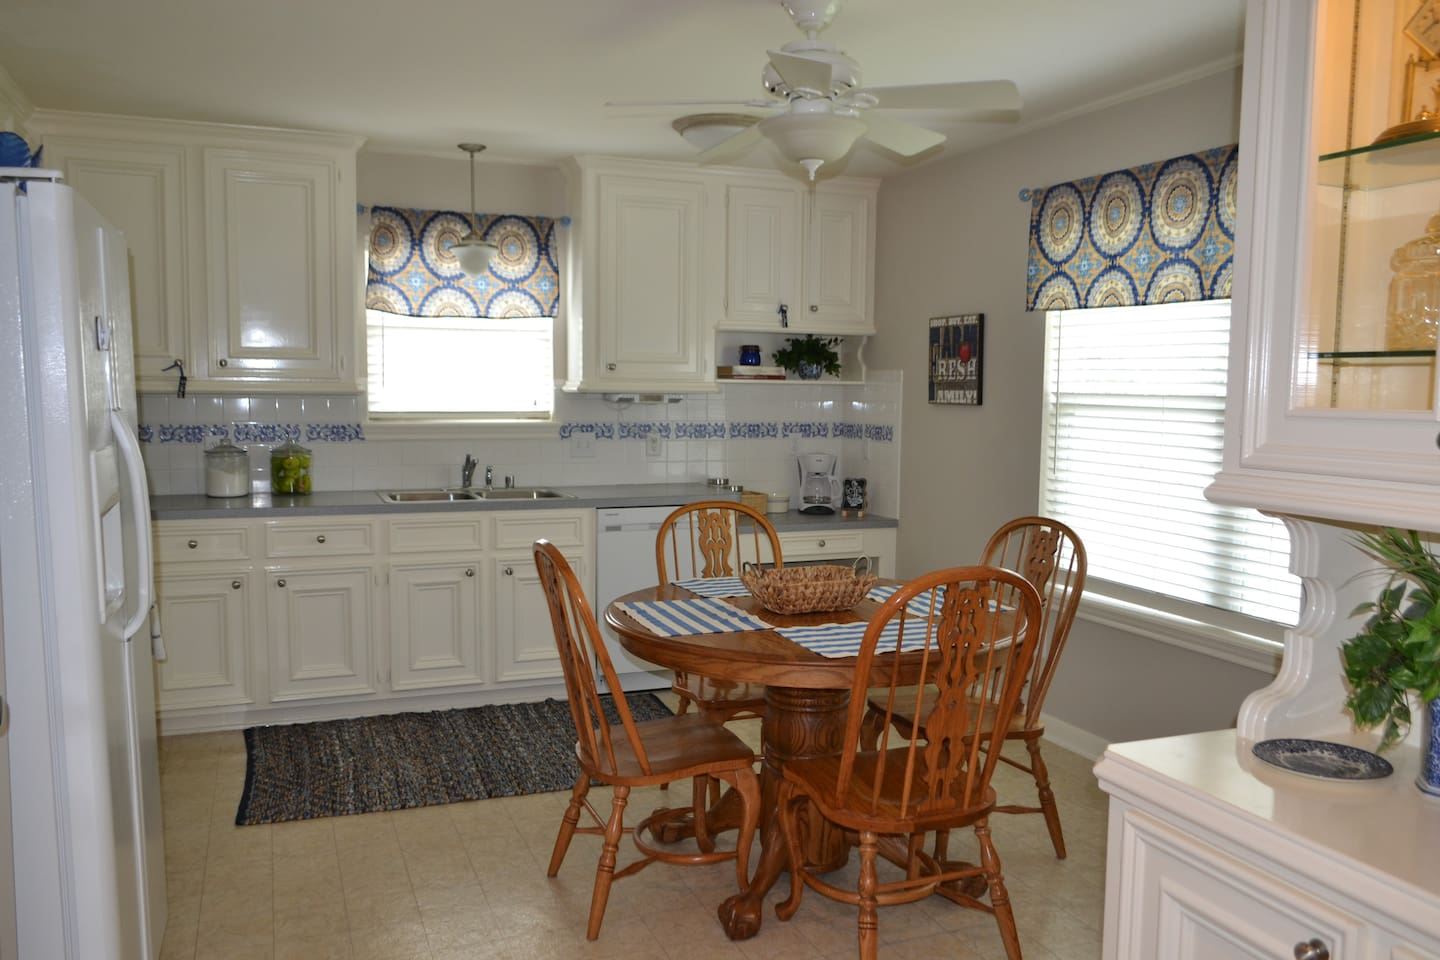 Fully equipped kitchen with oven, microwave & full size refrigerator